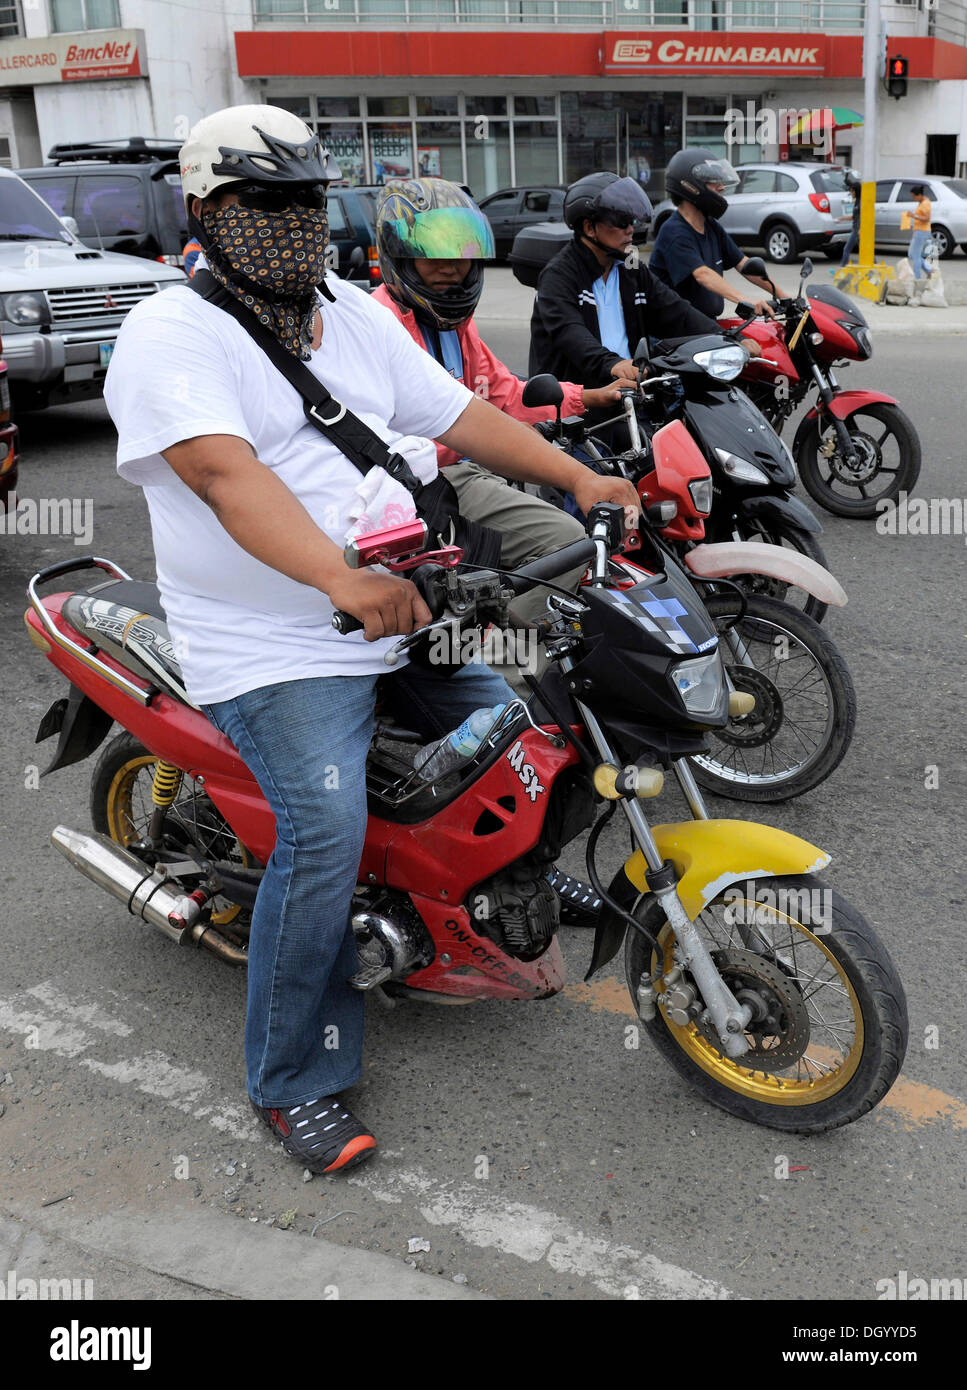 Overweight man on a motorcycle, Cebu, Philippines, Southeast Asia, Asia - Stock Image